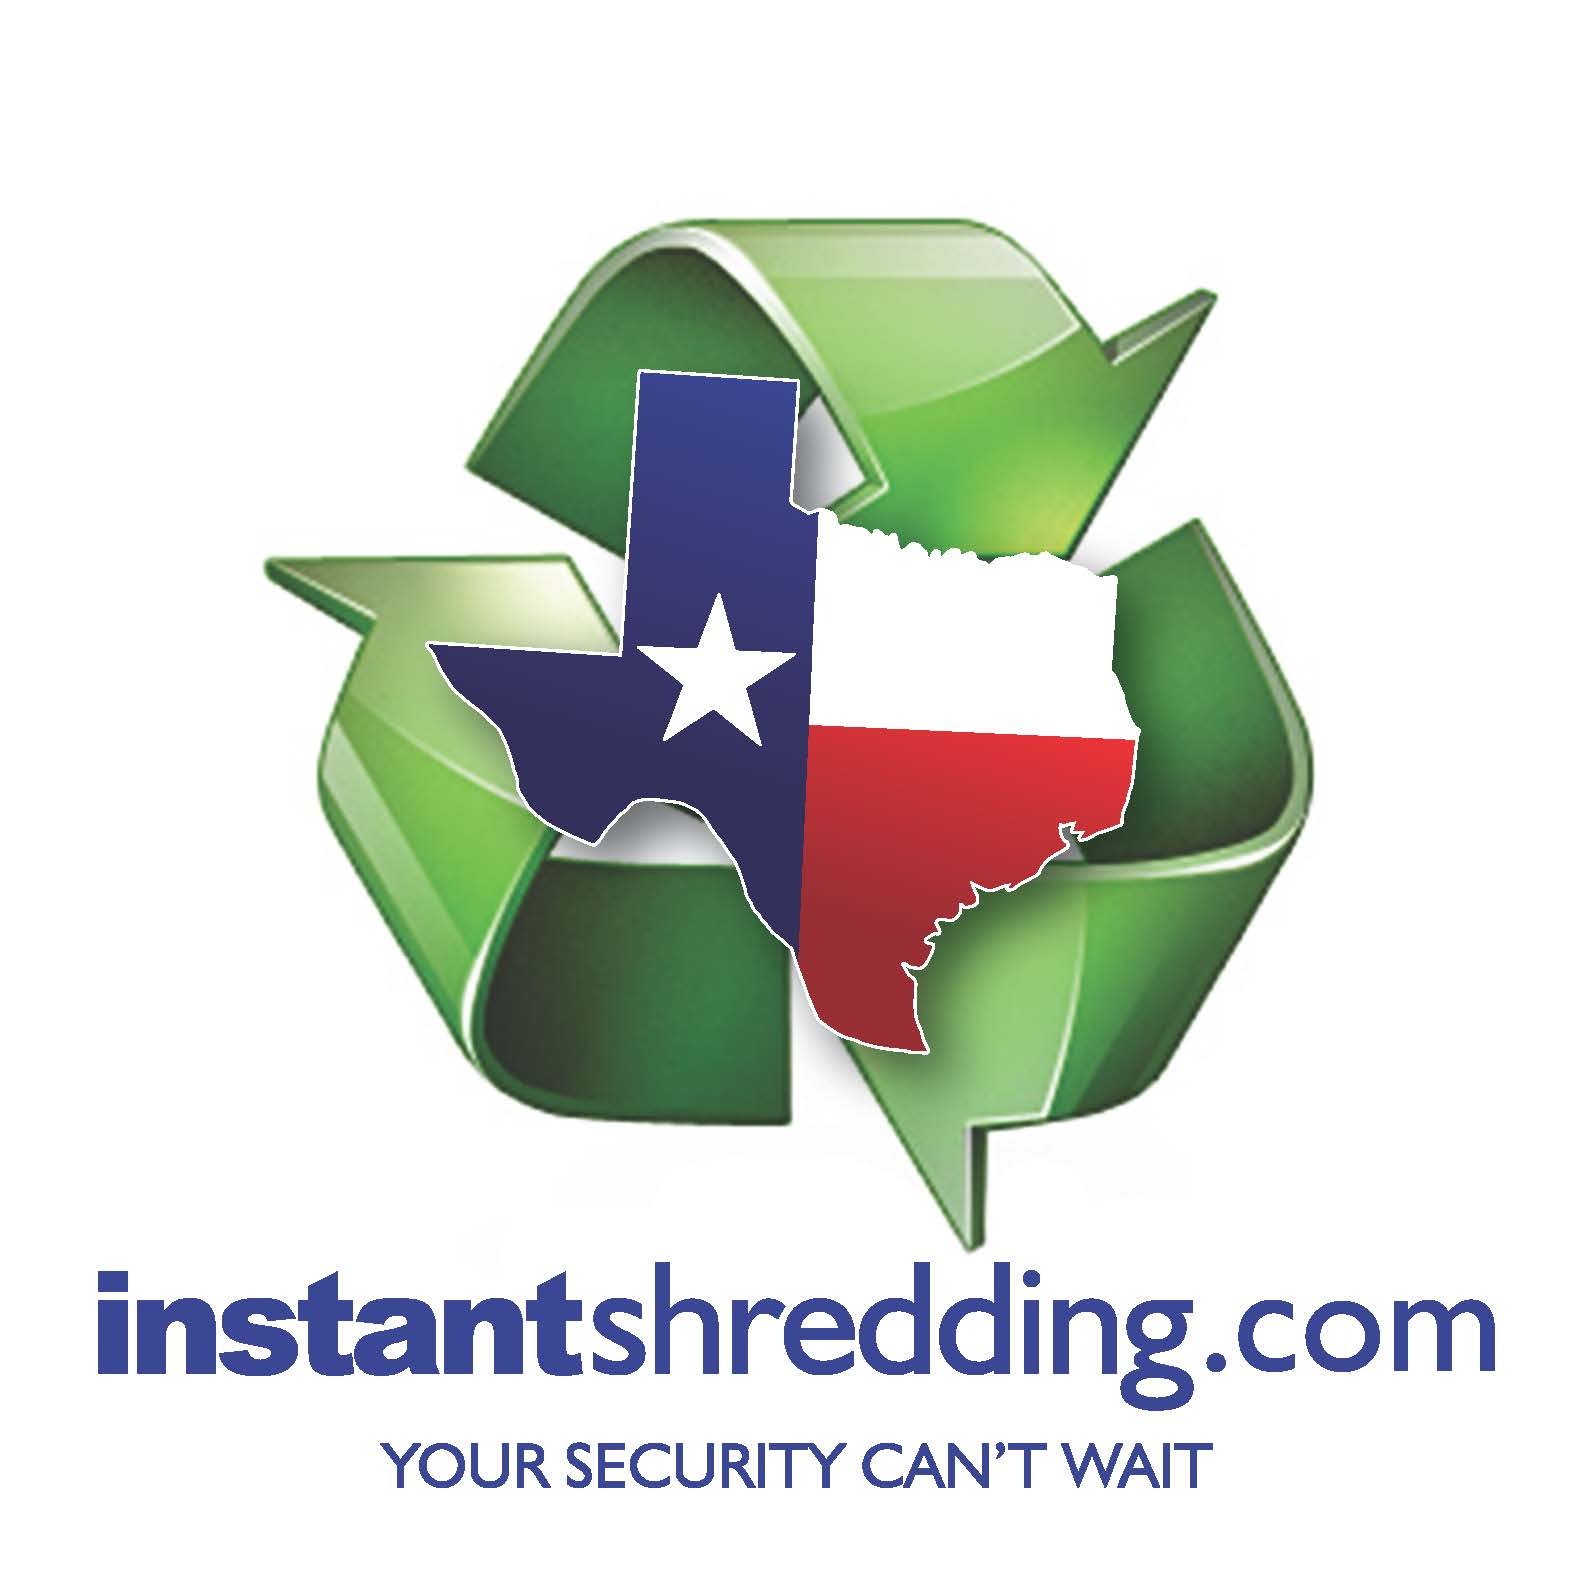 InstantShredding-2013Logo